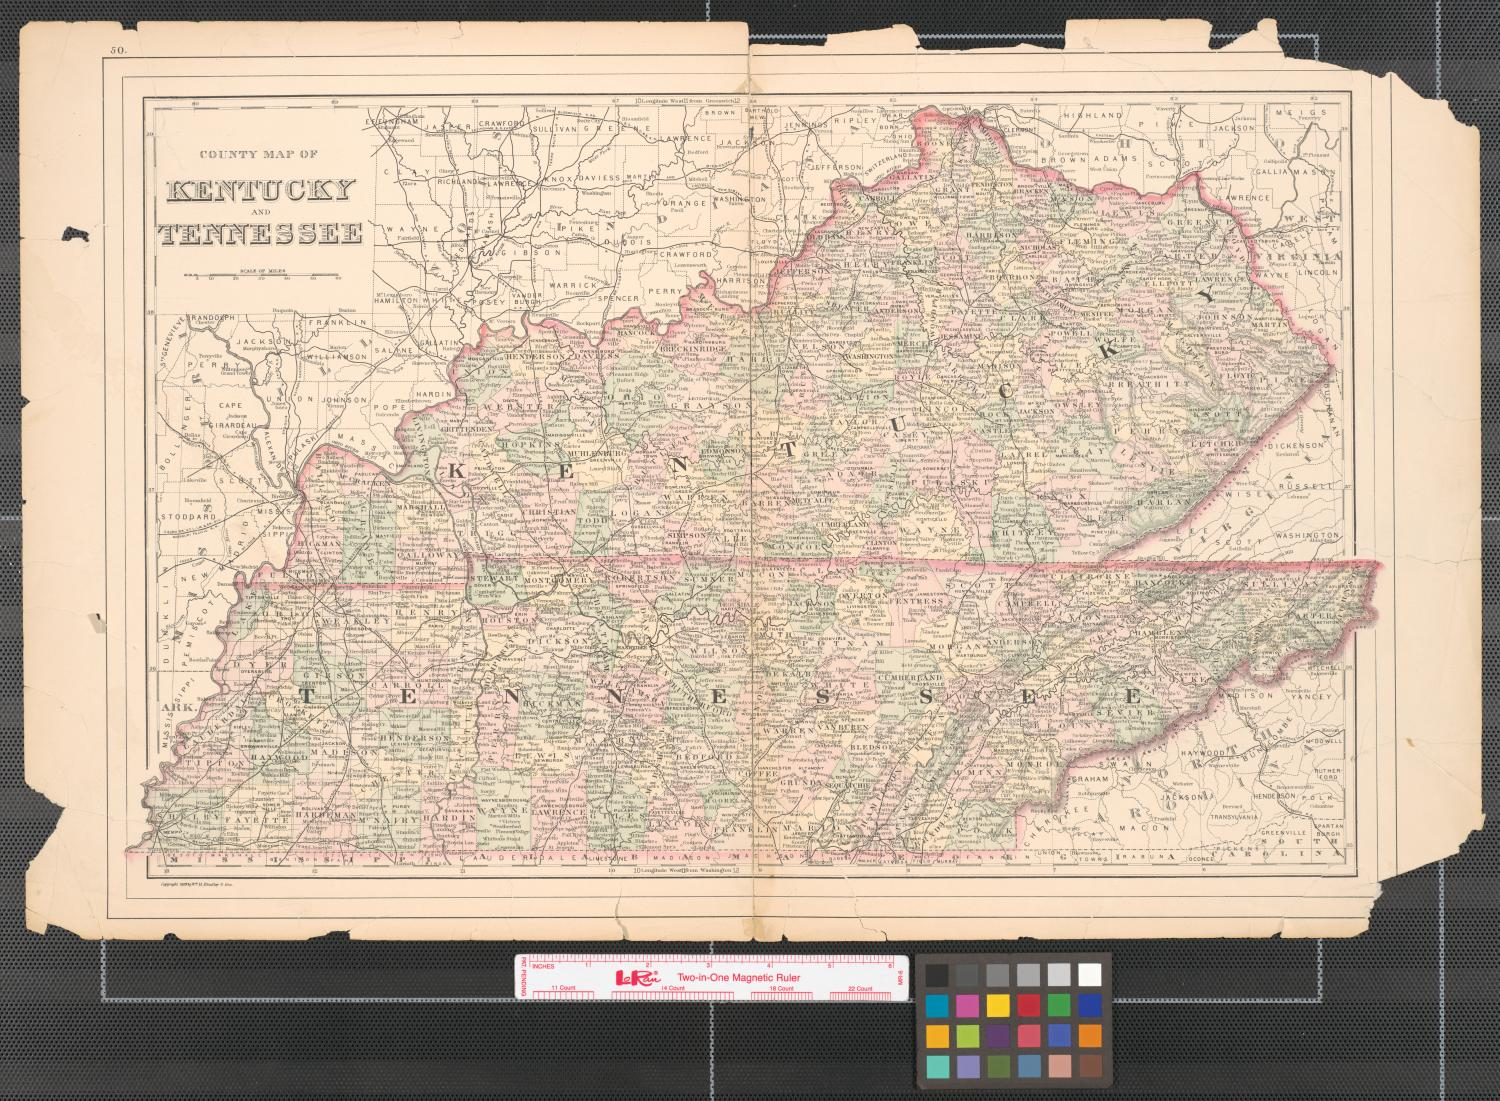 County map of Kentucky and Tennessee.                                                                                                      [Sequence #]: 1 of 2